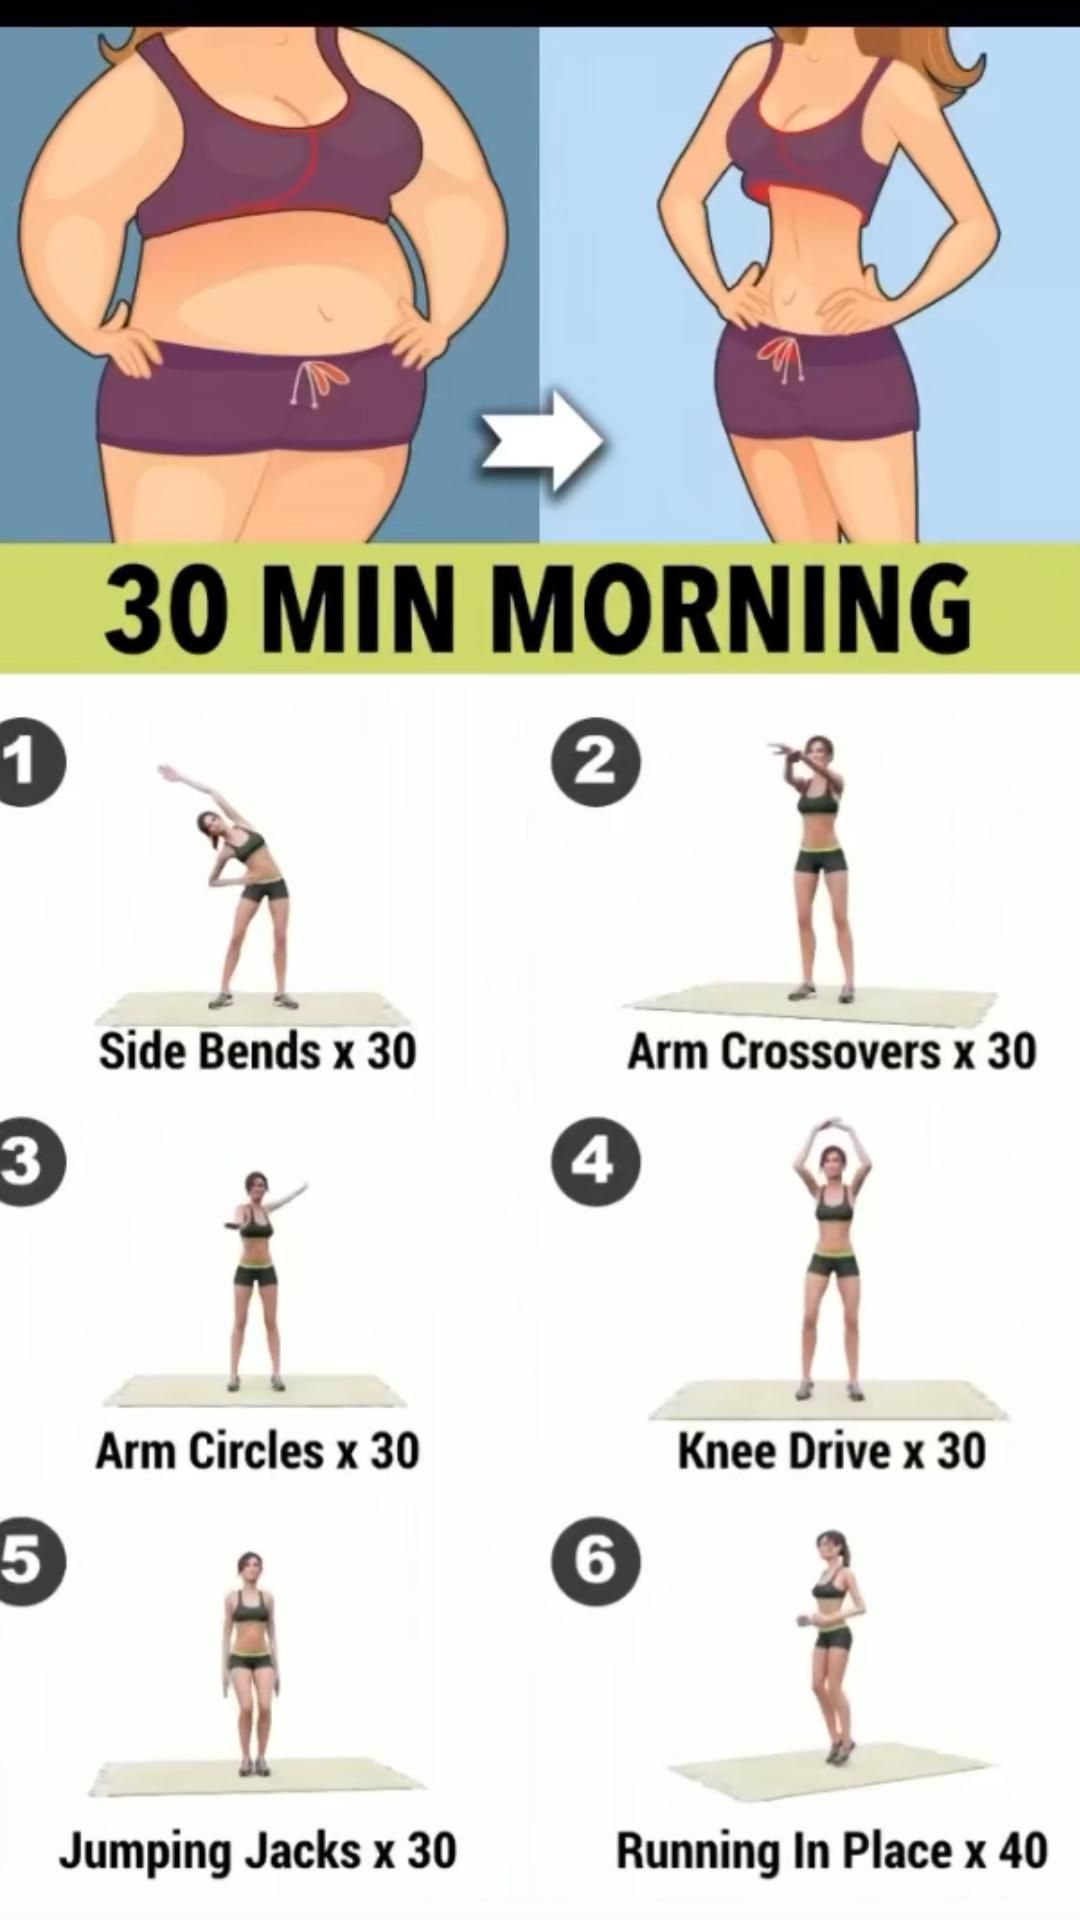 30 min morning routine to lose weight